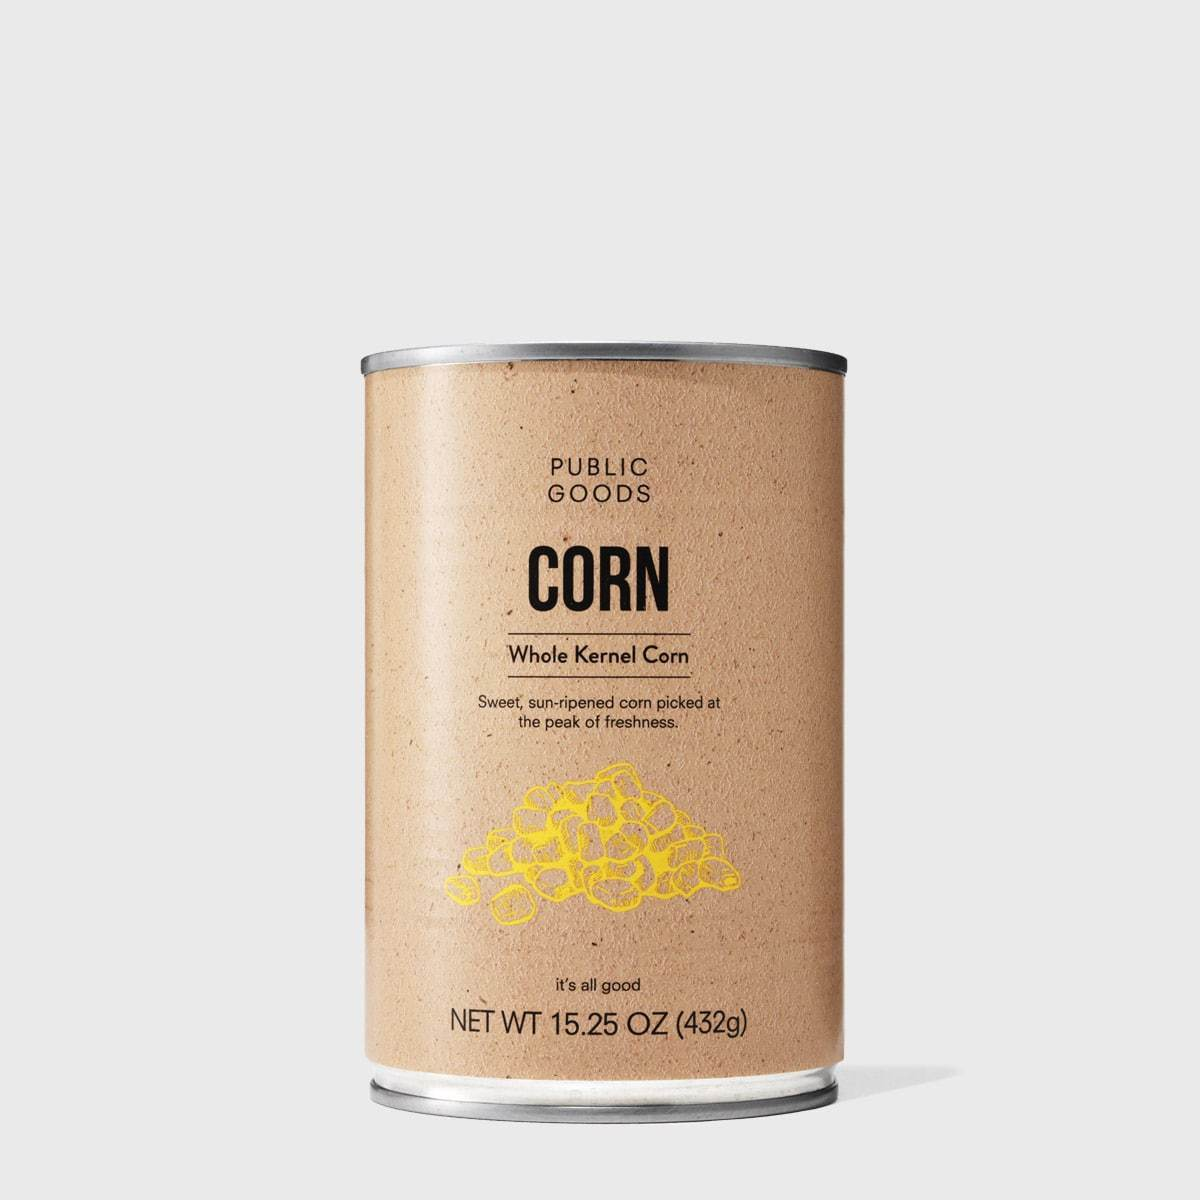 Public Goods Grocery Whole Kernel Corn